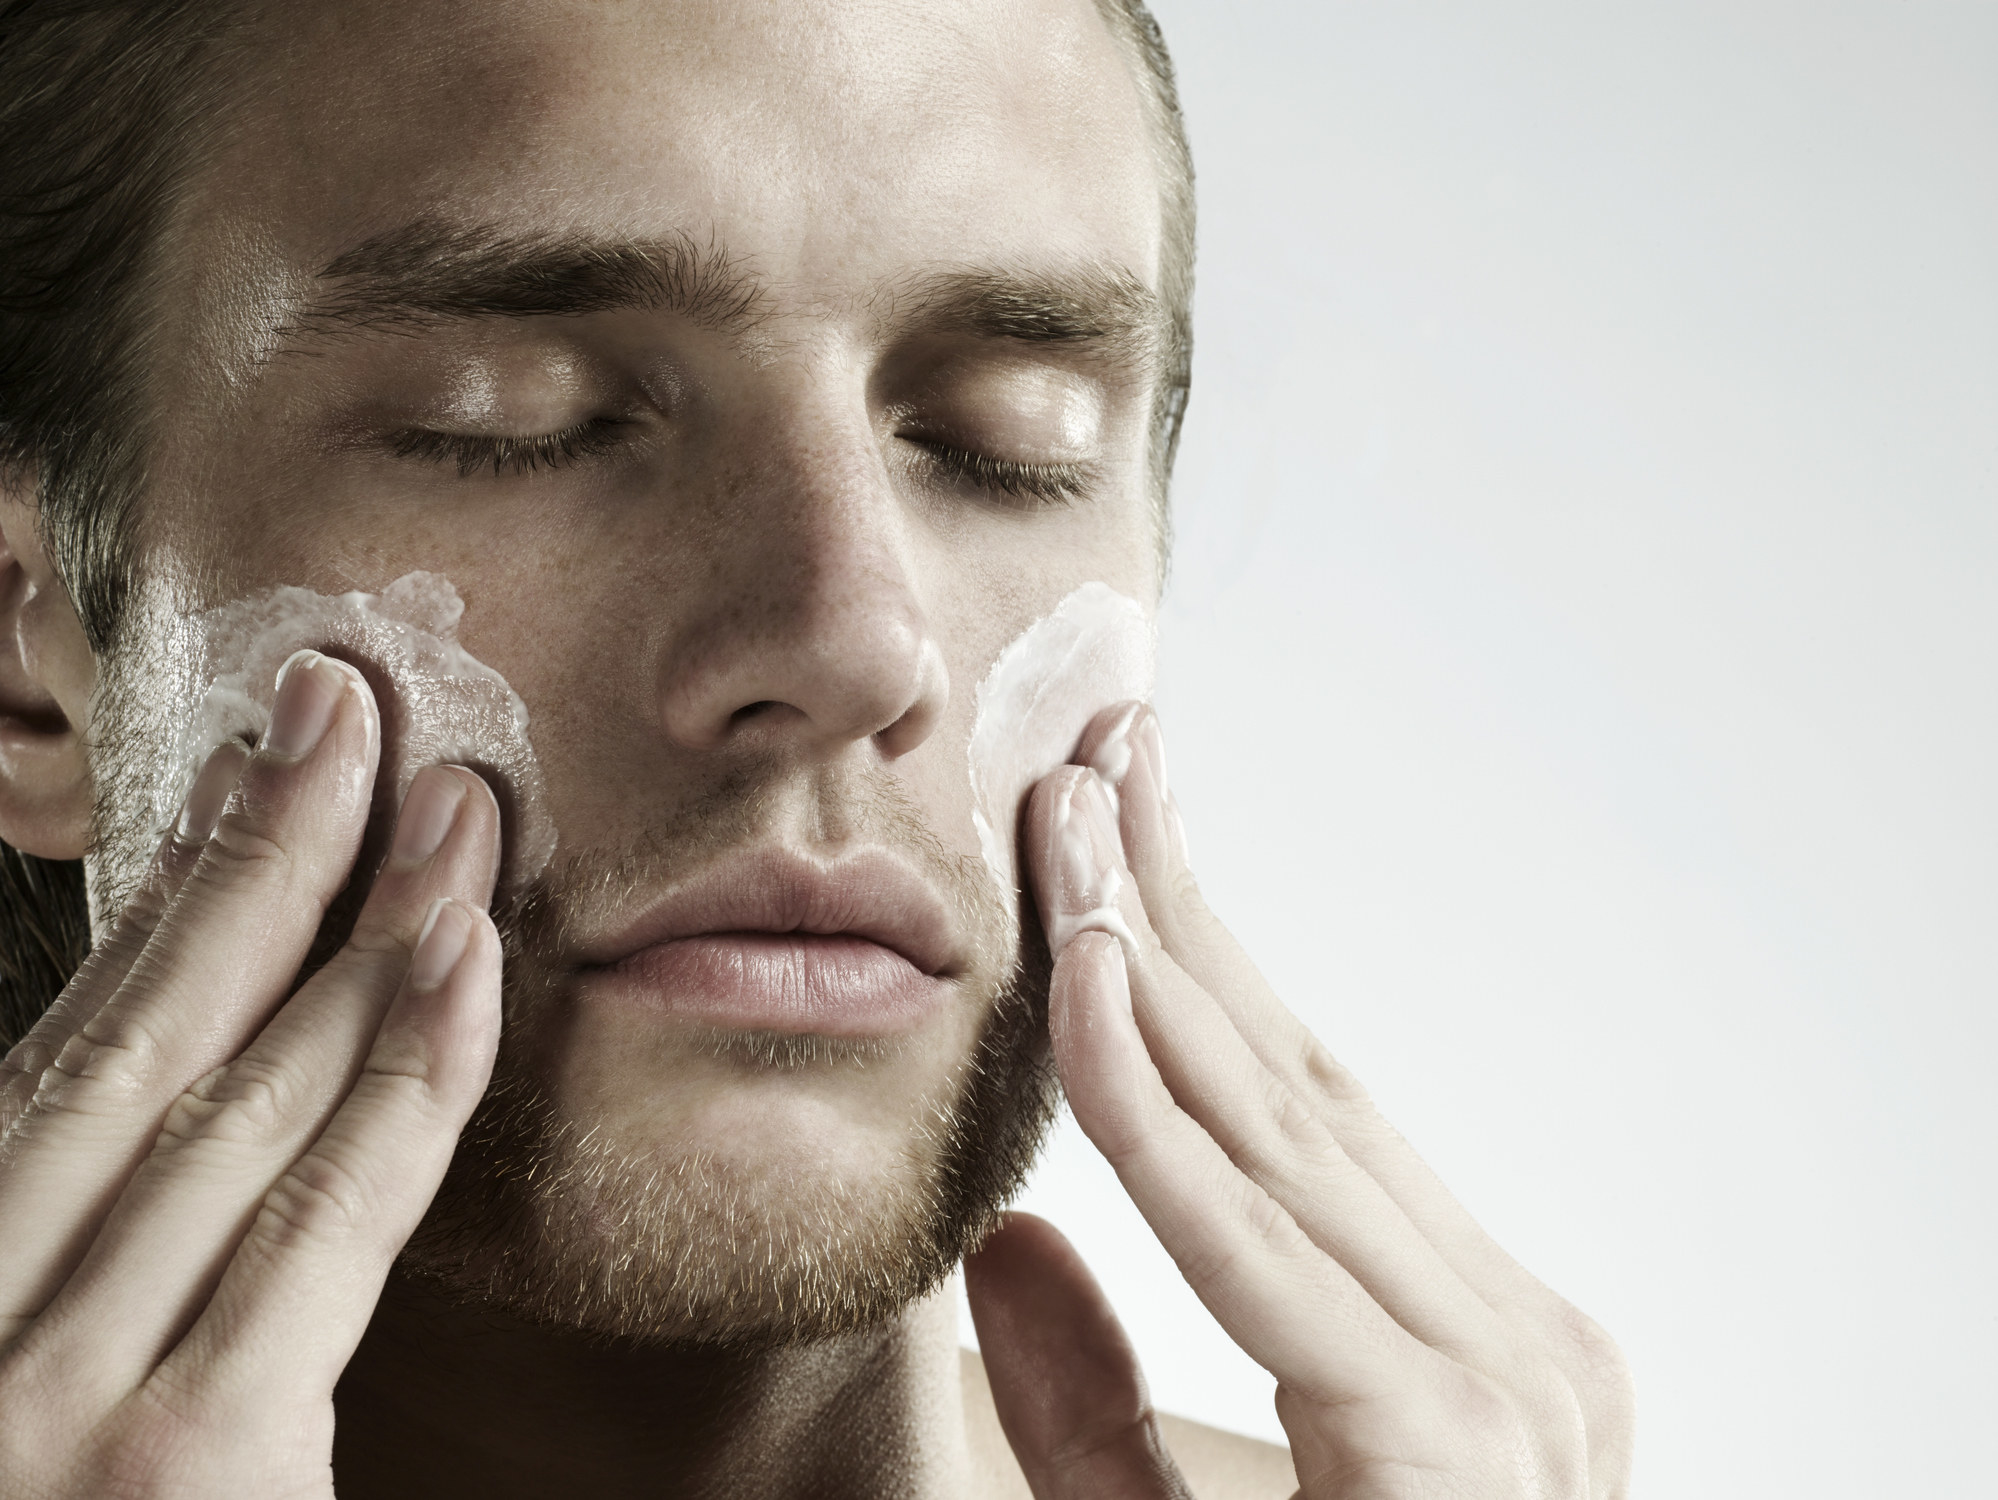 Man putting on moisturizer